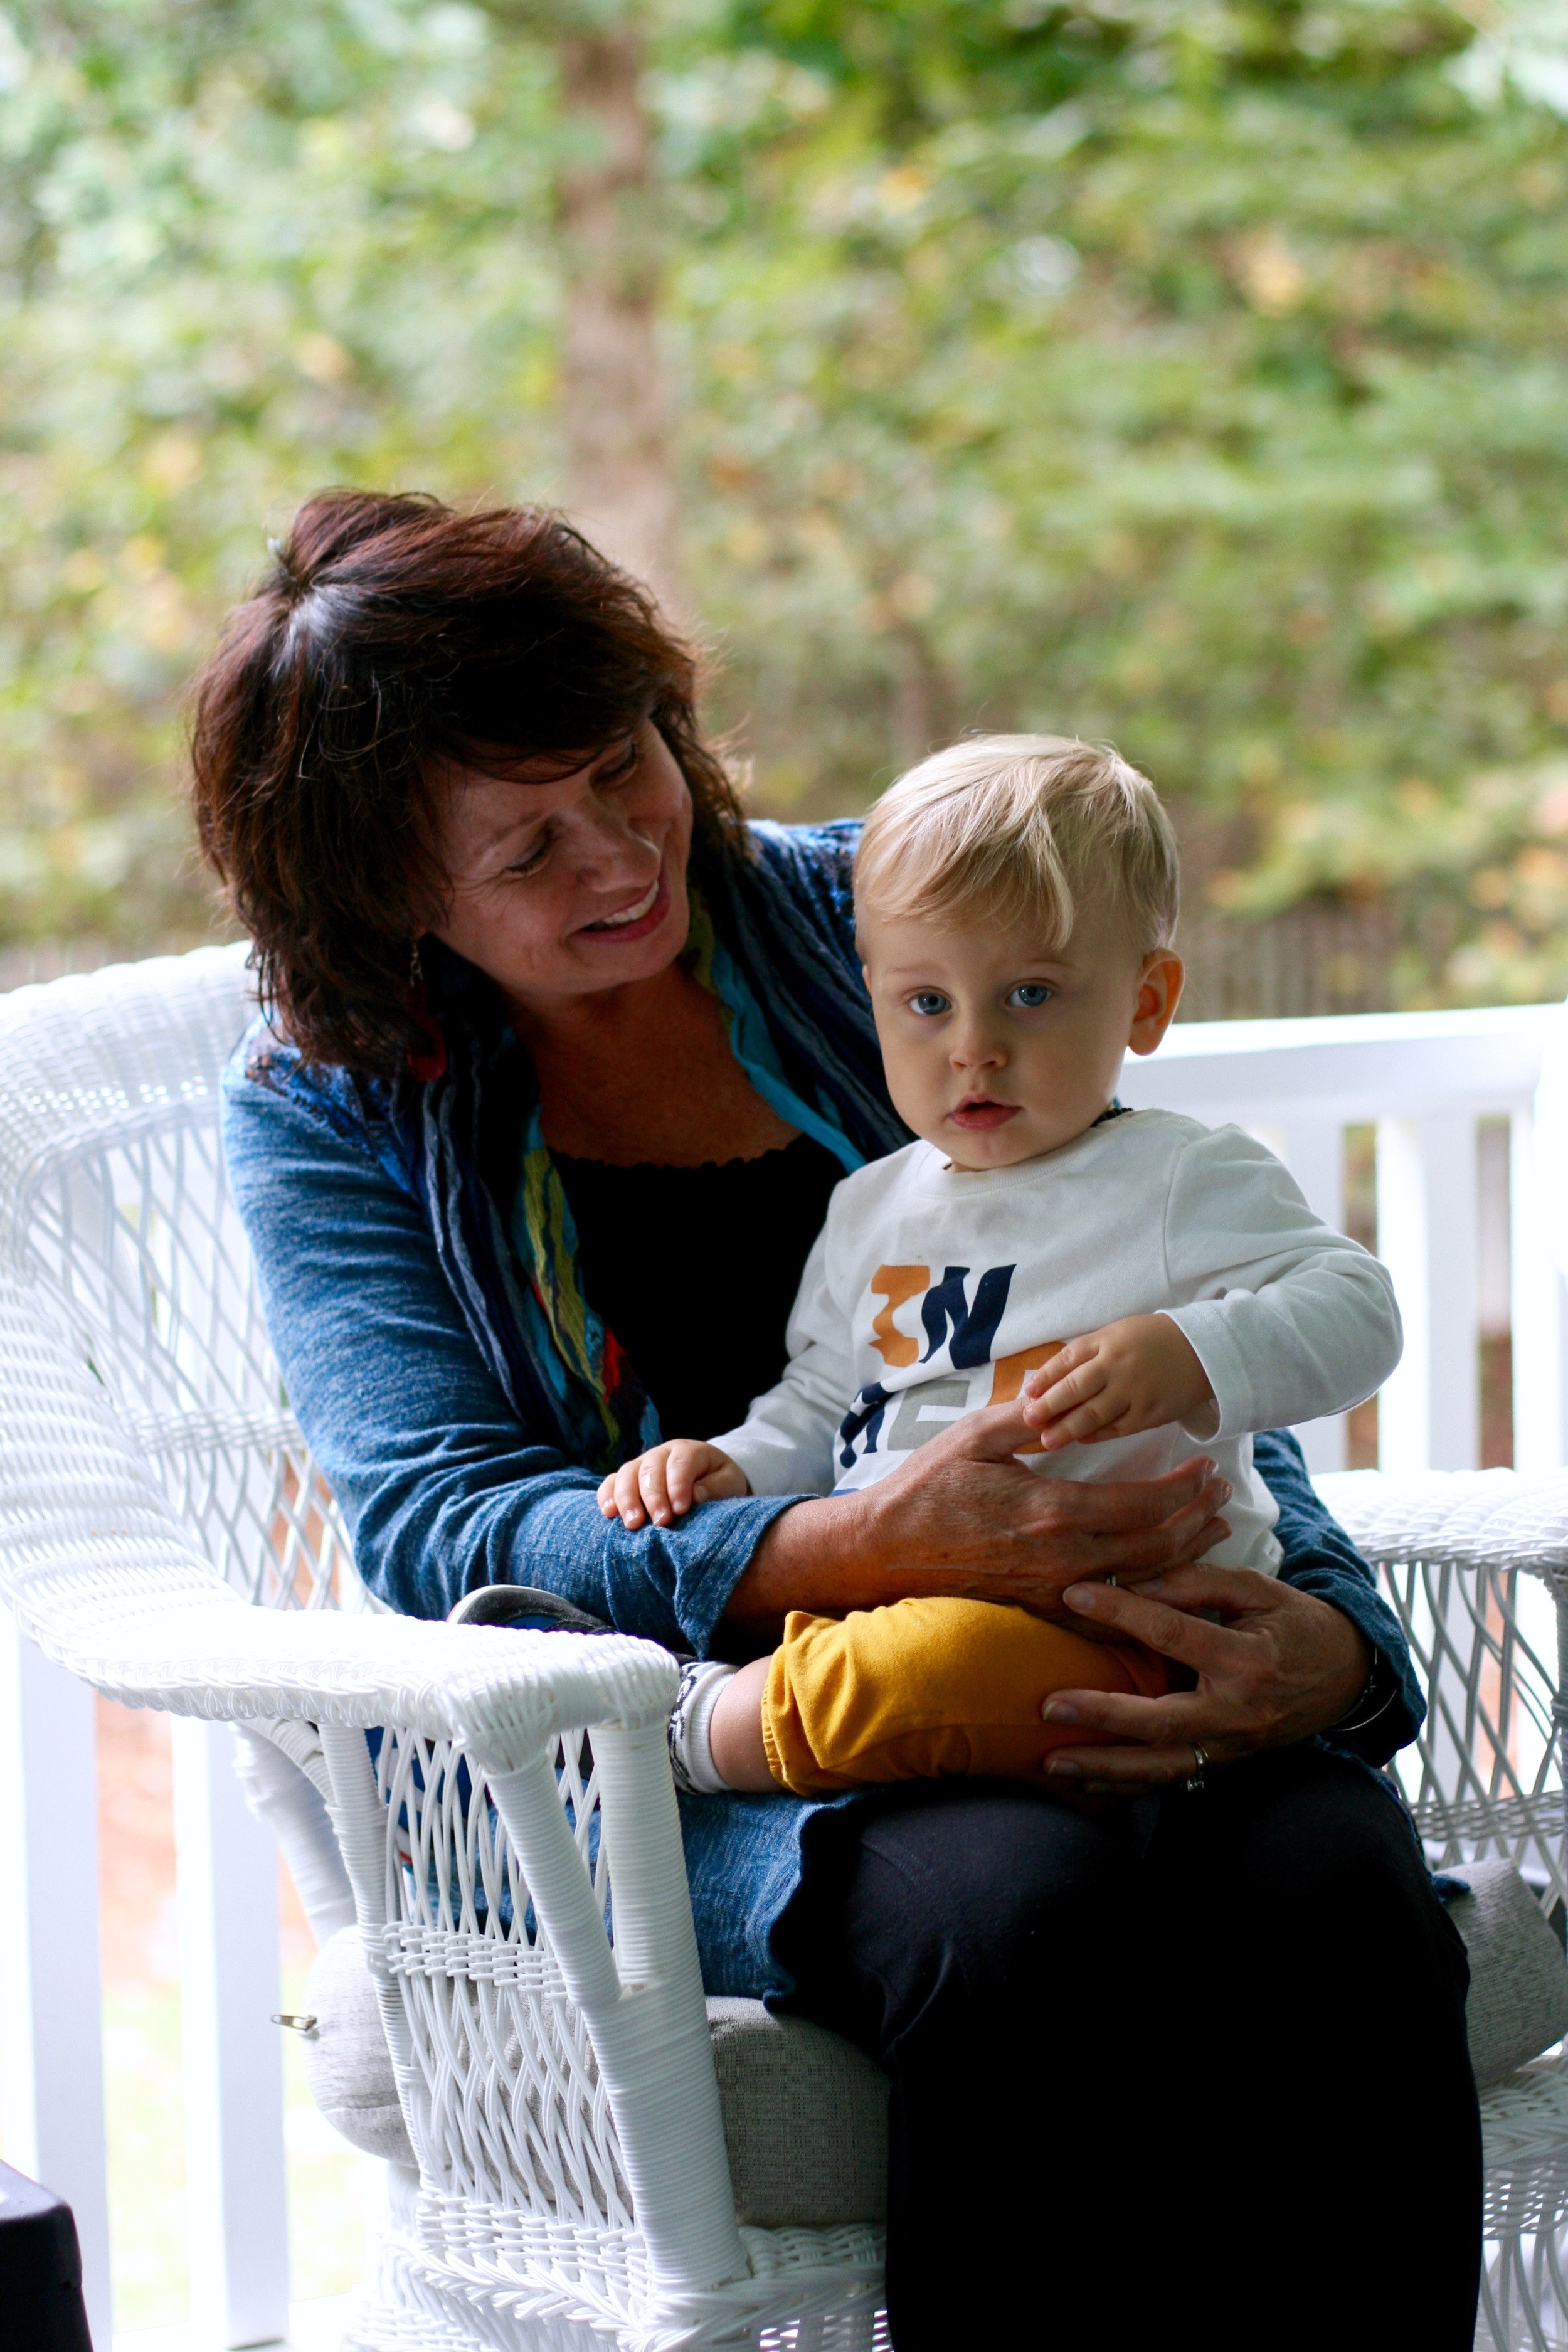 This little one is fiercely protective of his Nana.